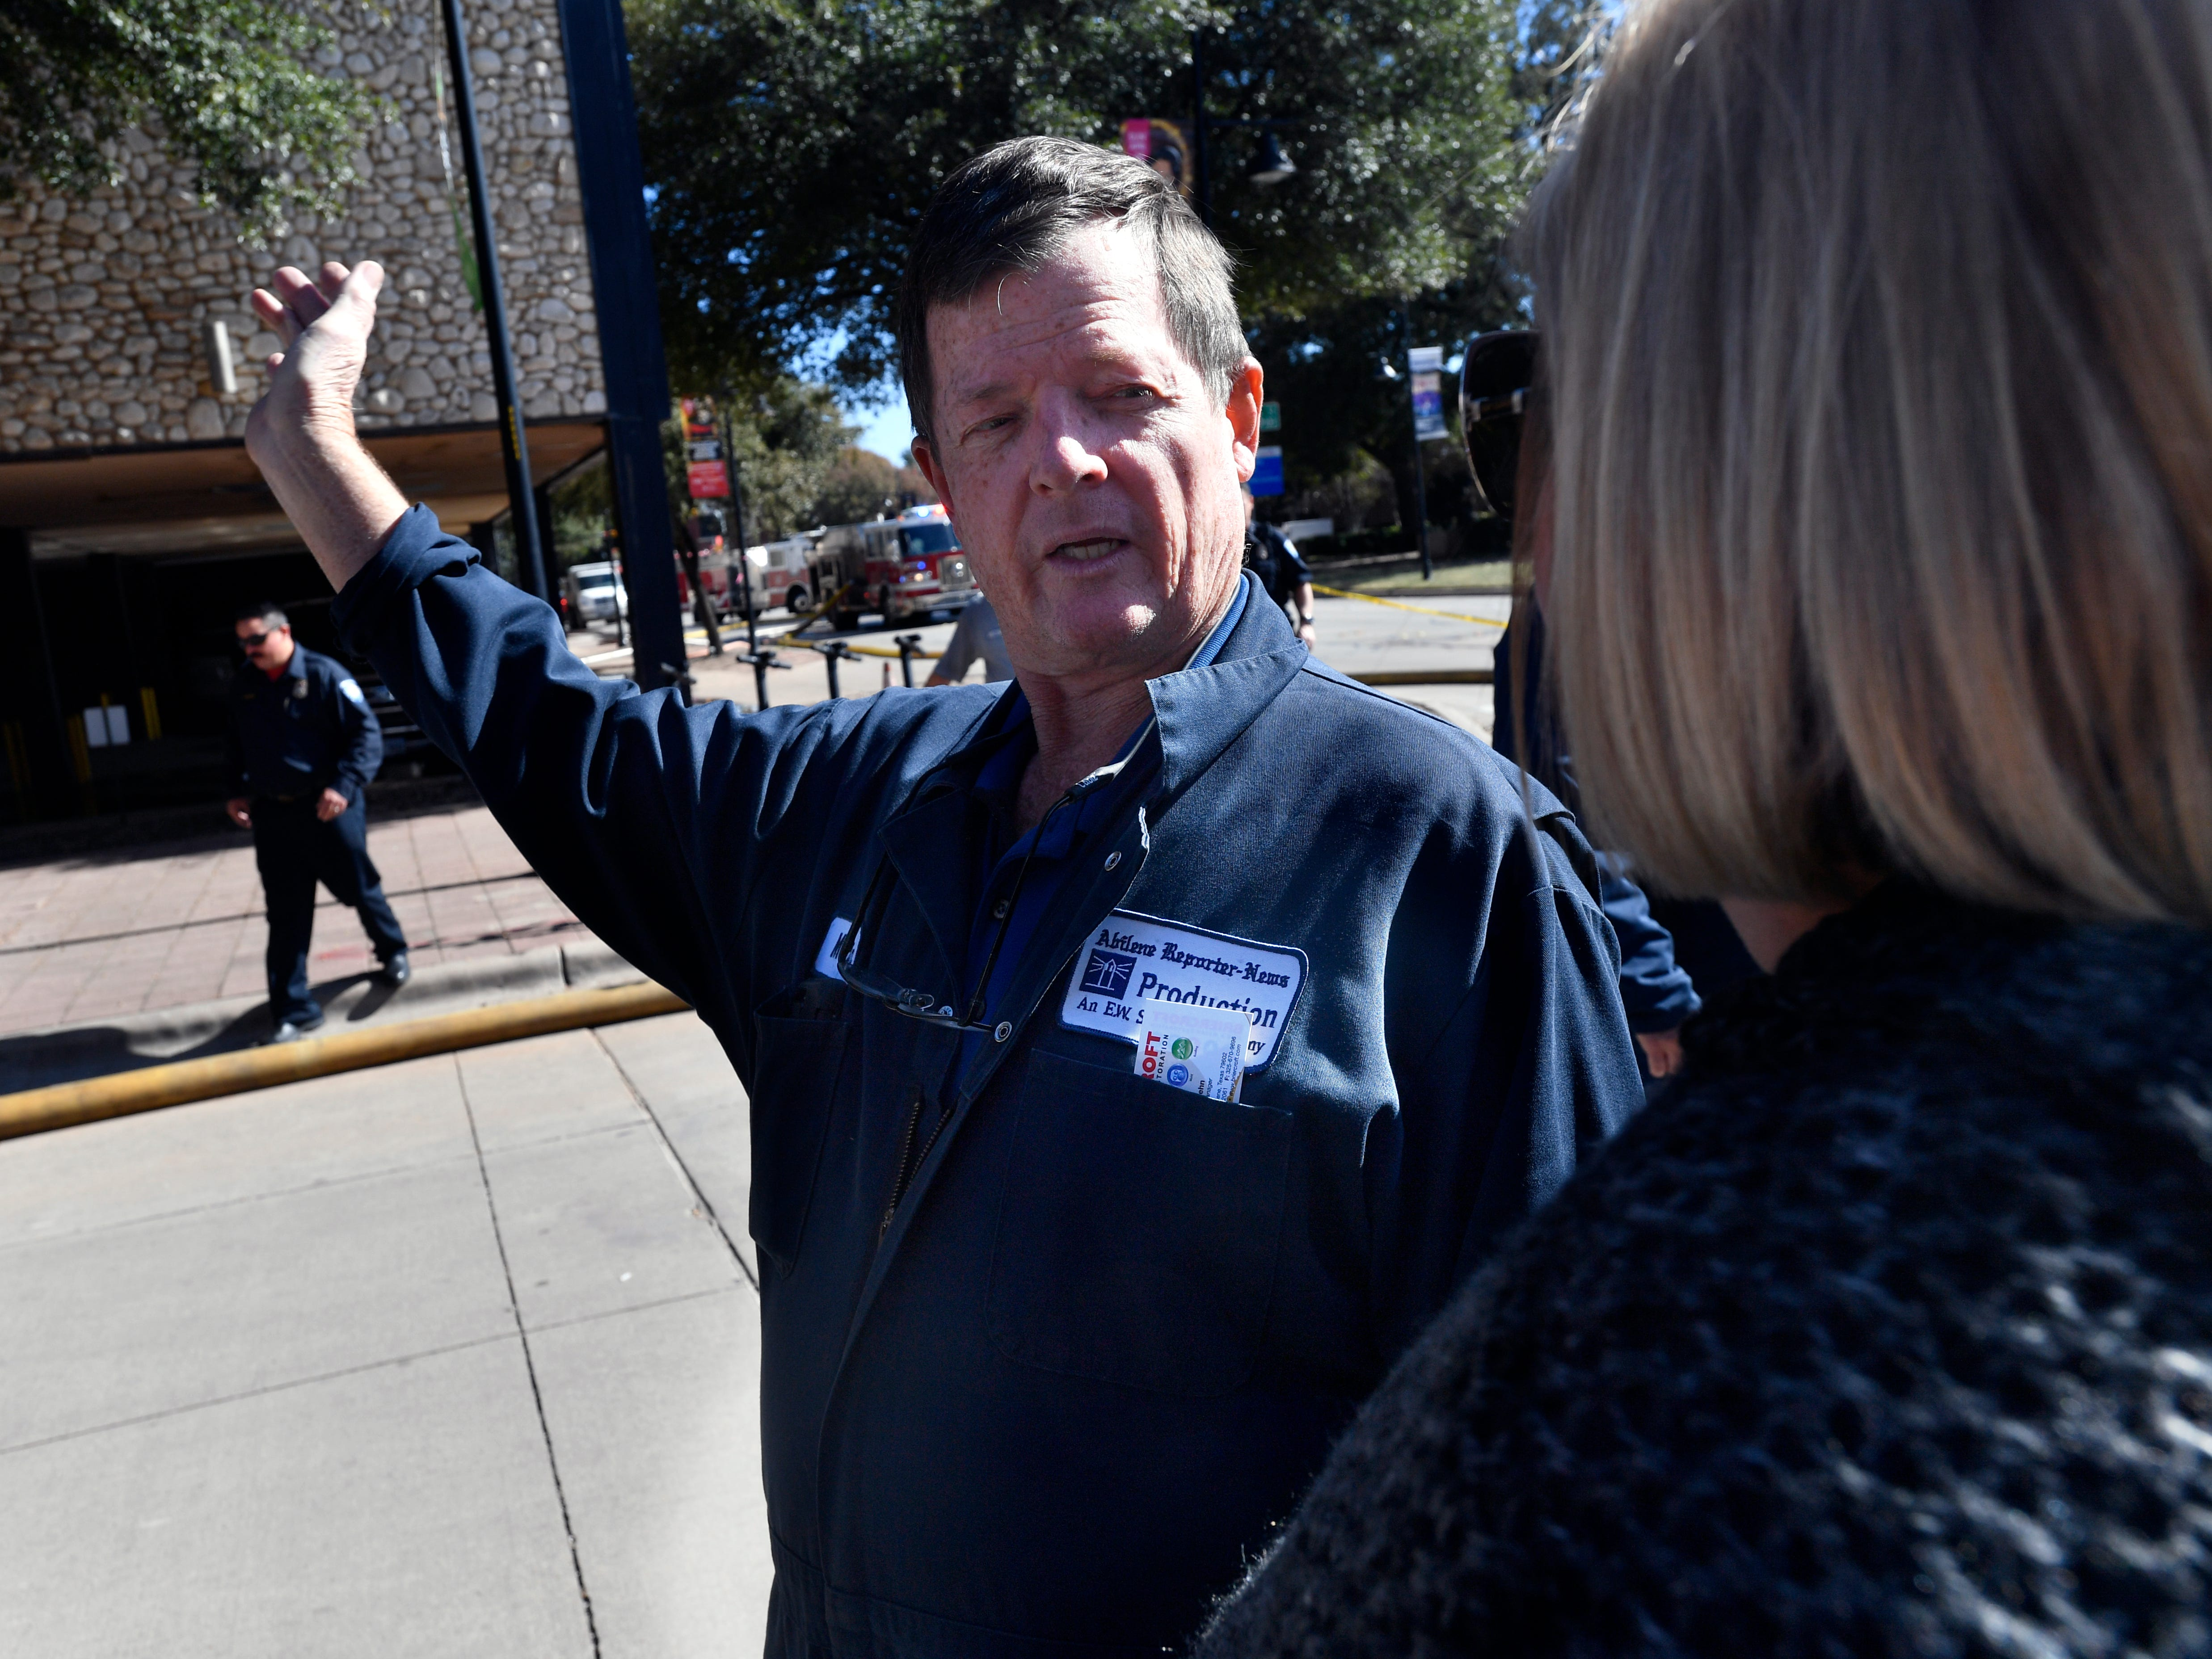 Martin Thomas, director of operations, speaks with Missy Keefer, regional sales director for central Texas Gannett, in front of the Abilene Reporter-News Thursday Nov. 15, 2018. Abilene firefighters responded to a two-alarm blaze at the Abilene Reporter-News Thursday. The fire was called in at 9:20 a.m., at one time all three of the city's ladder trucks were employed during the fight.,